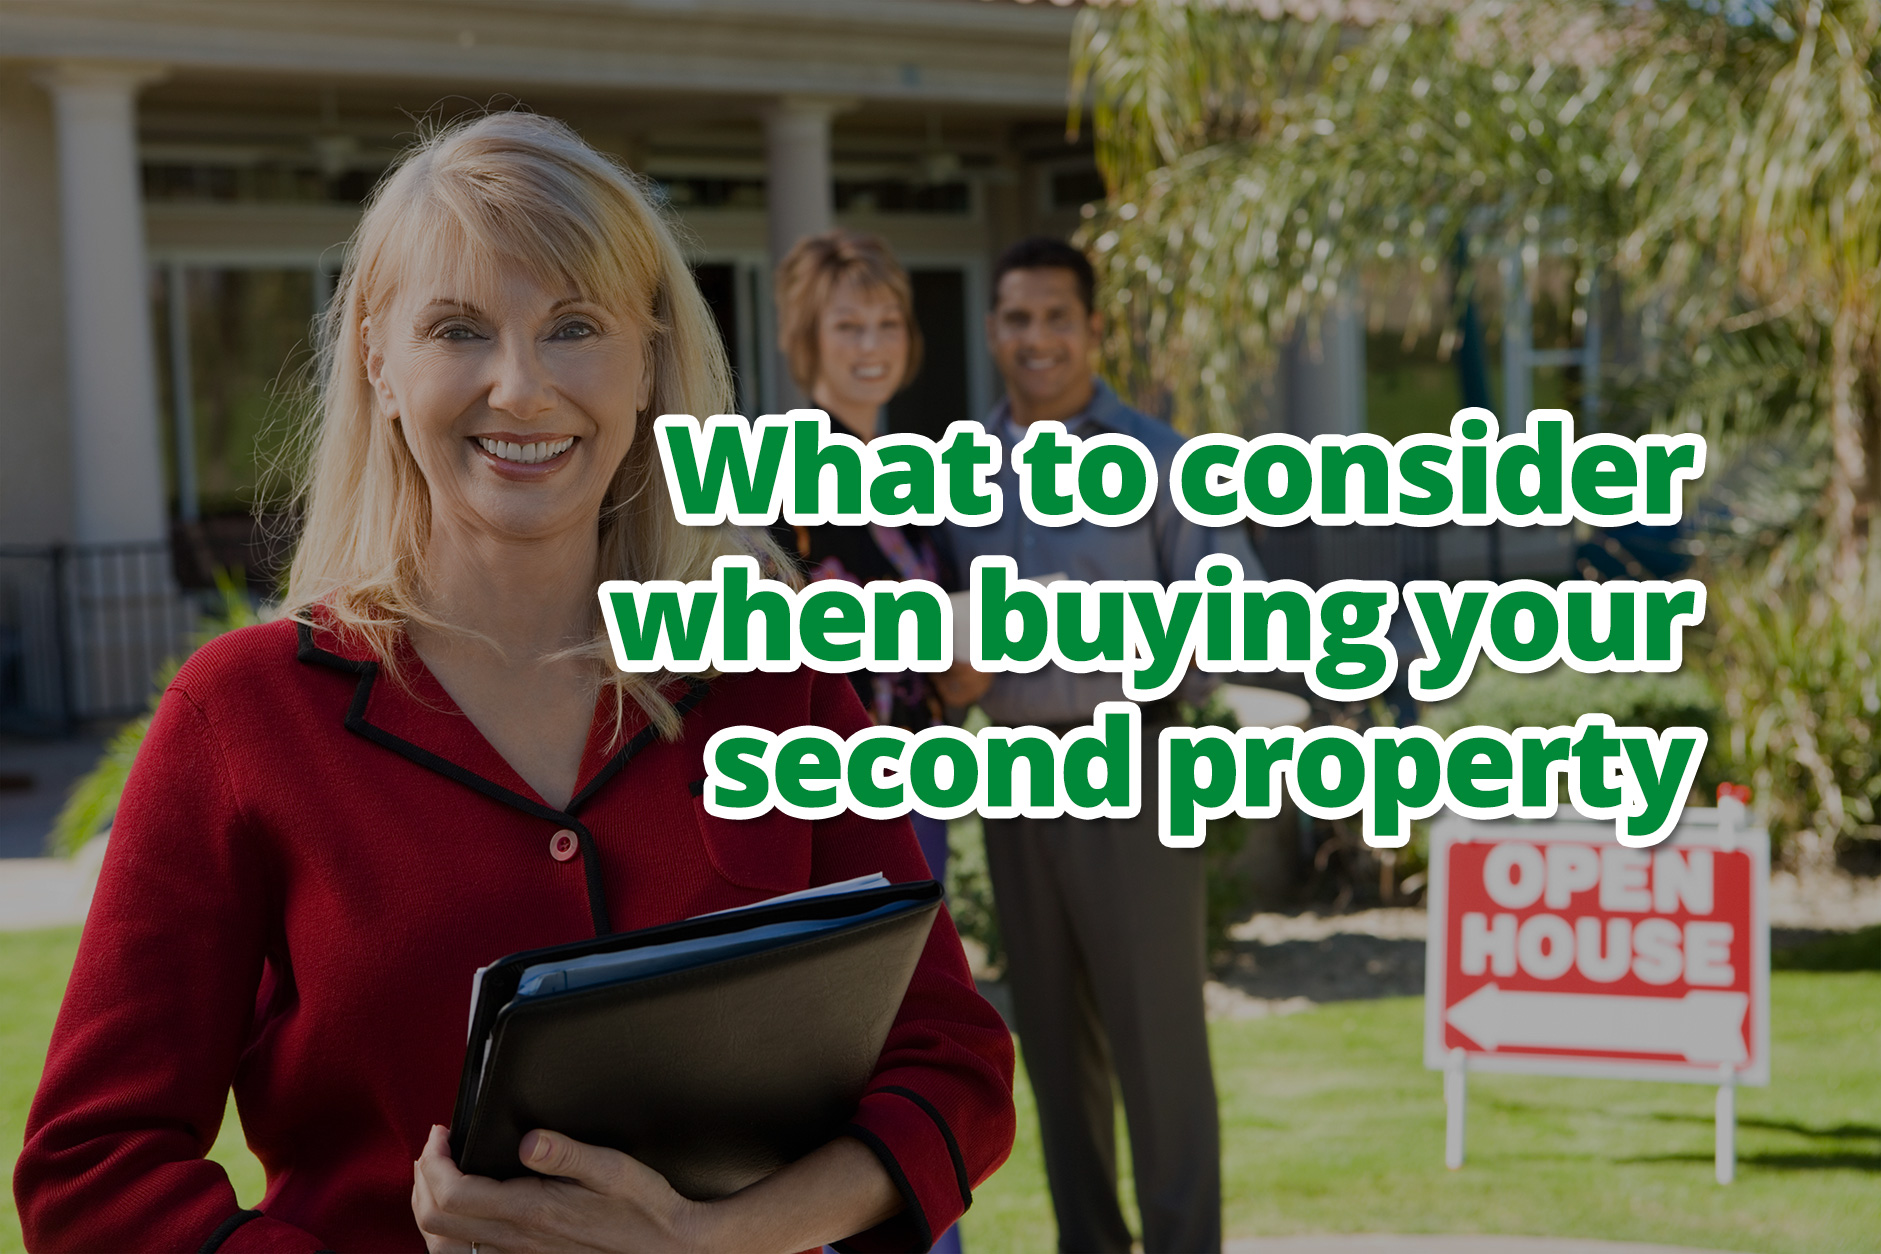 What you need to consider when buying your second property